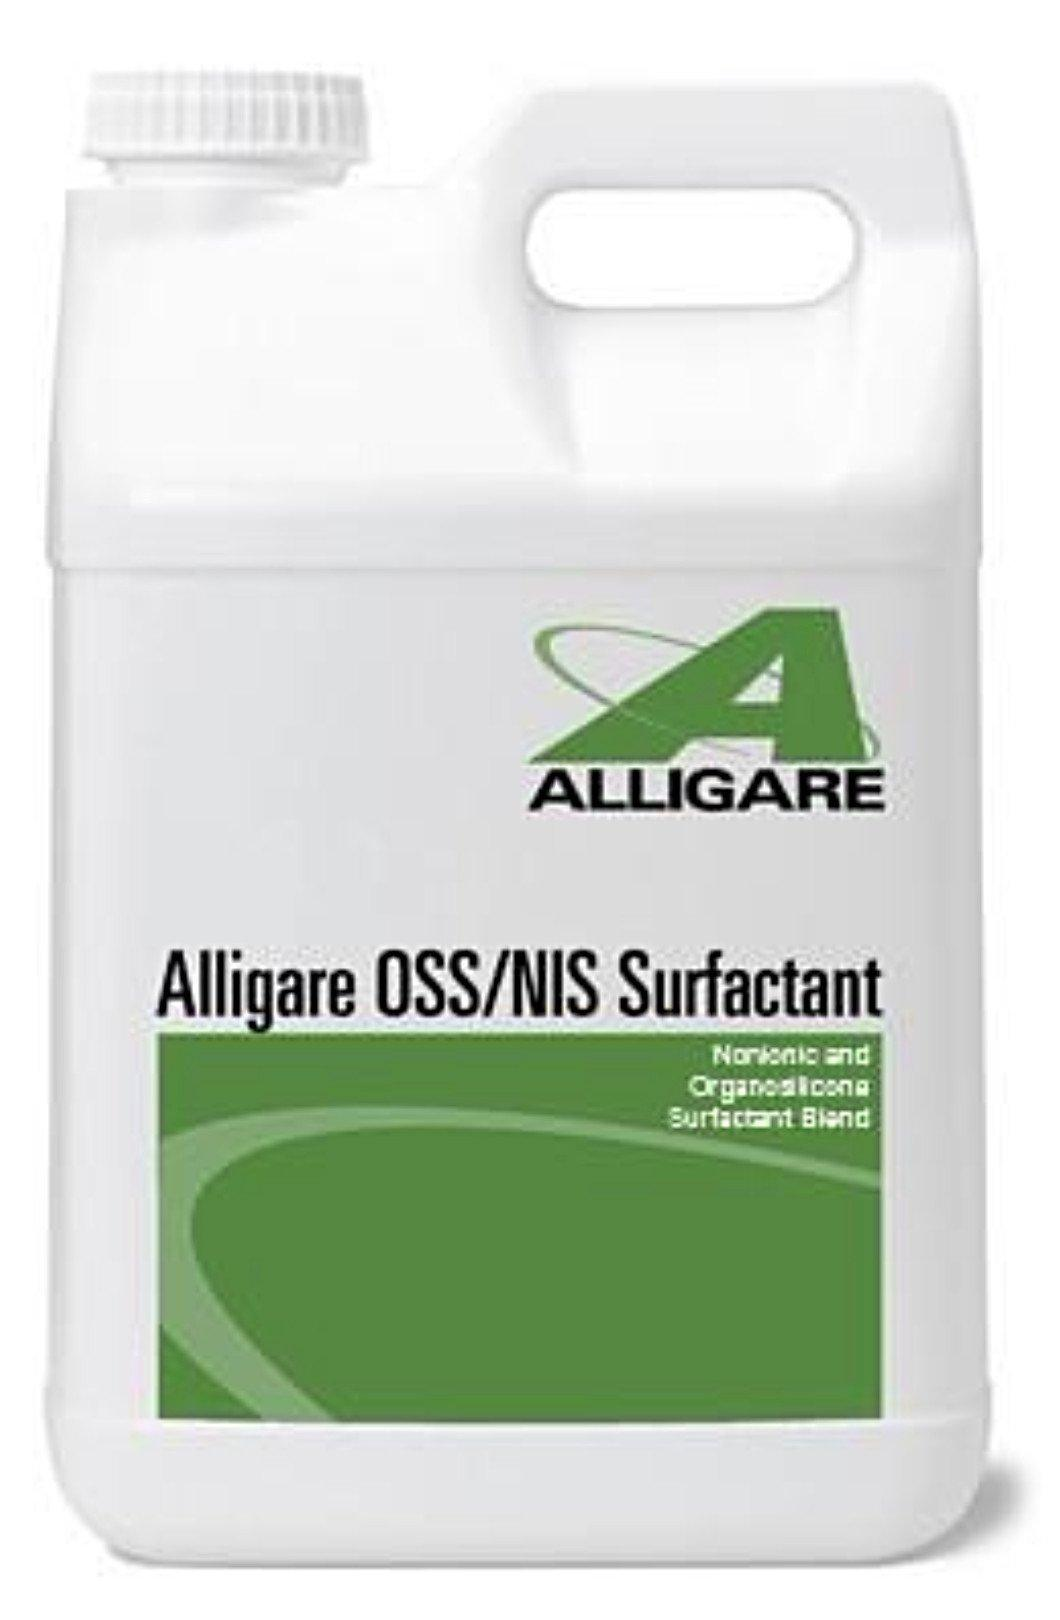 Surfactant - OSS/NIS Non-Ionic Surfactant For Herbicides